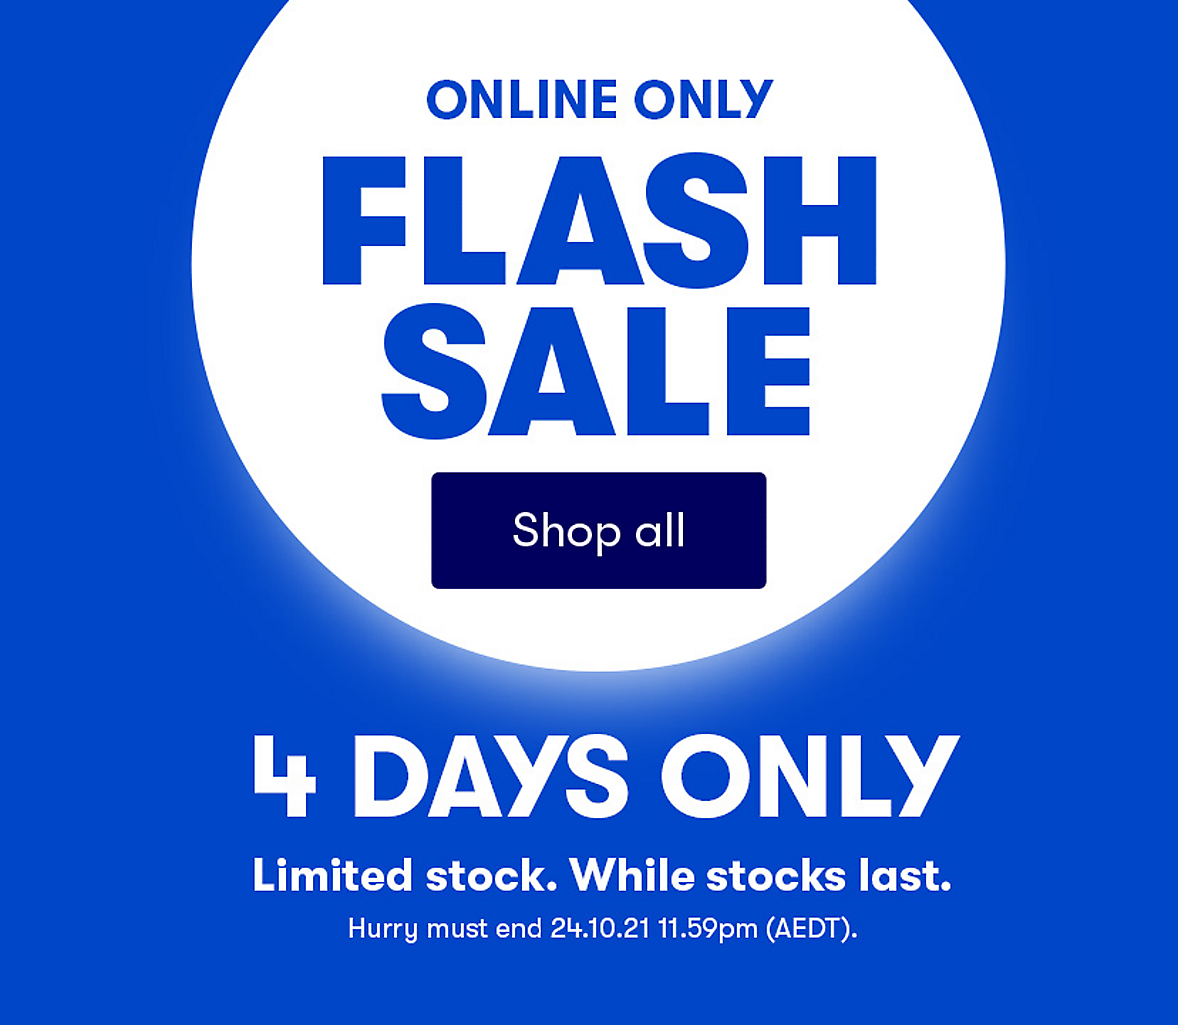 Online only flash sale. Hurry Ends 24/10/2021